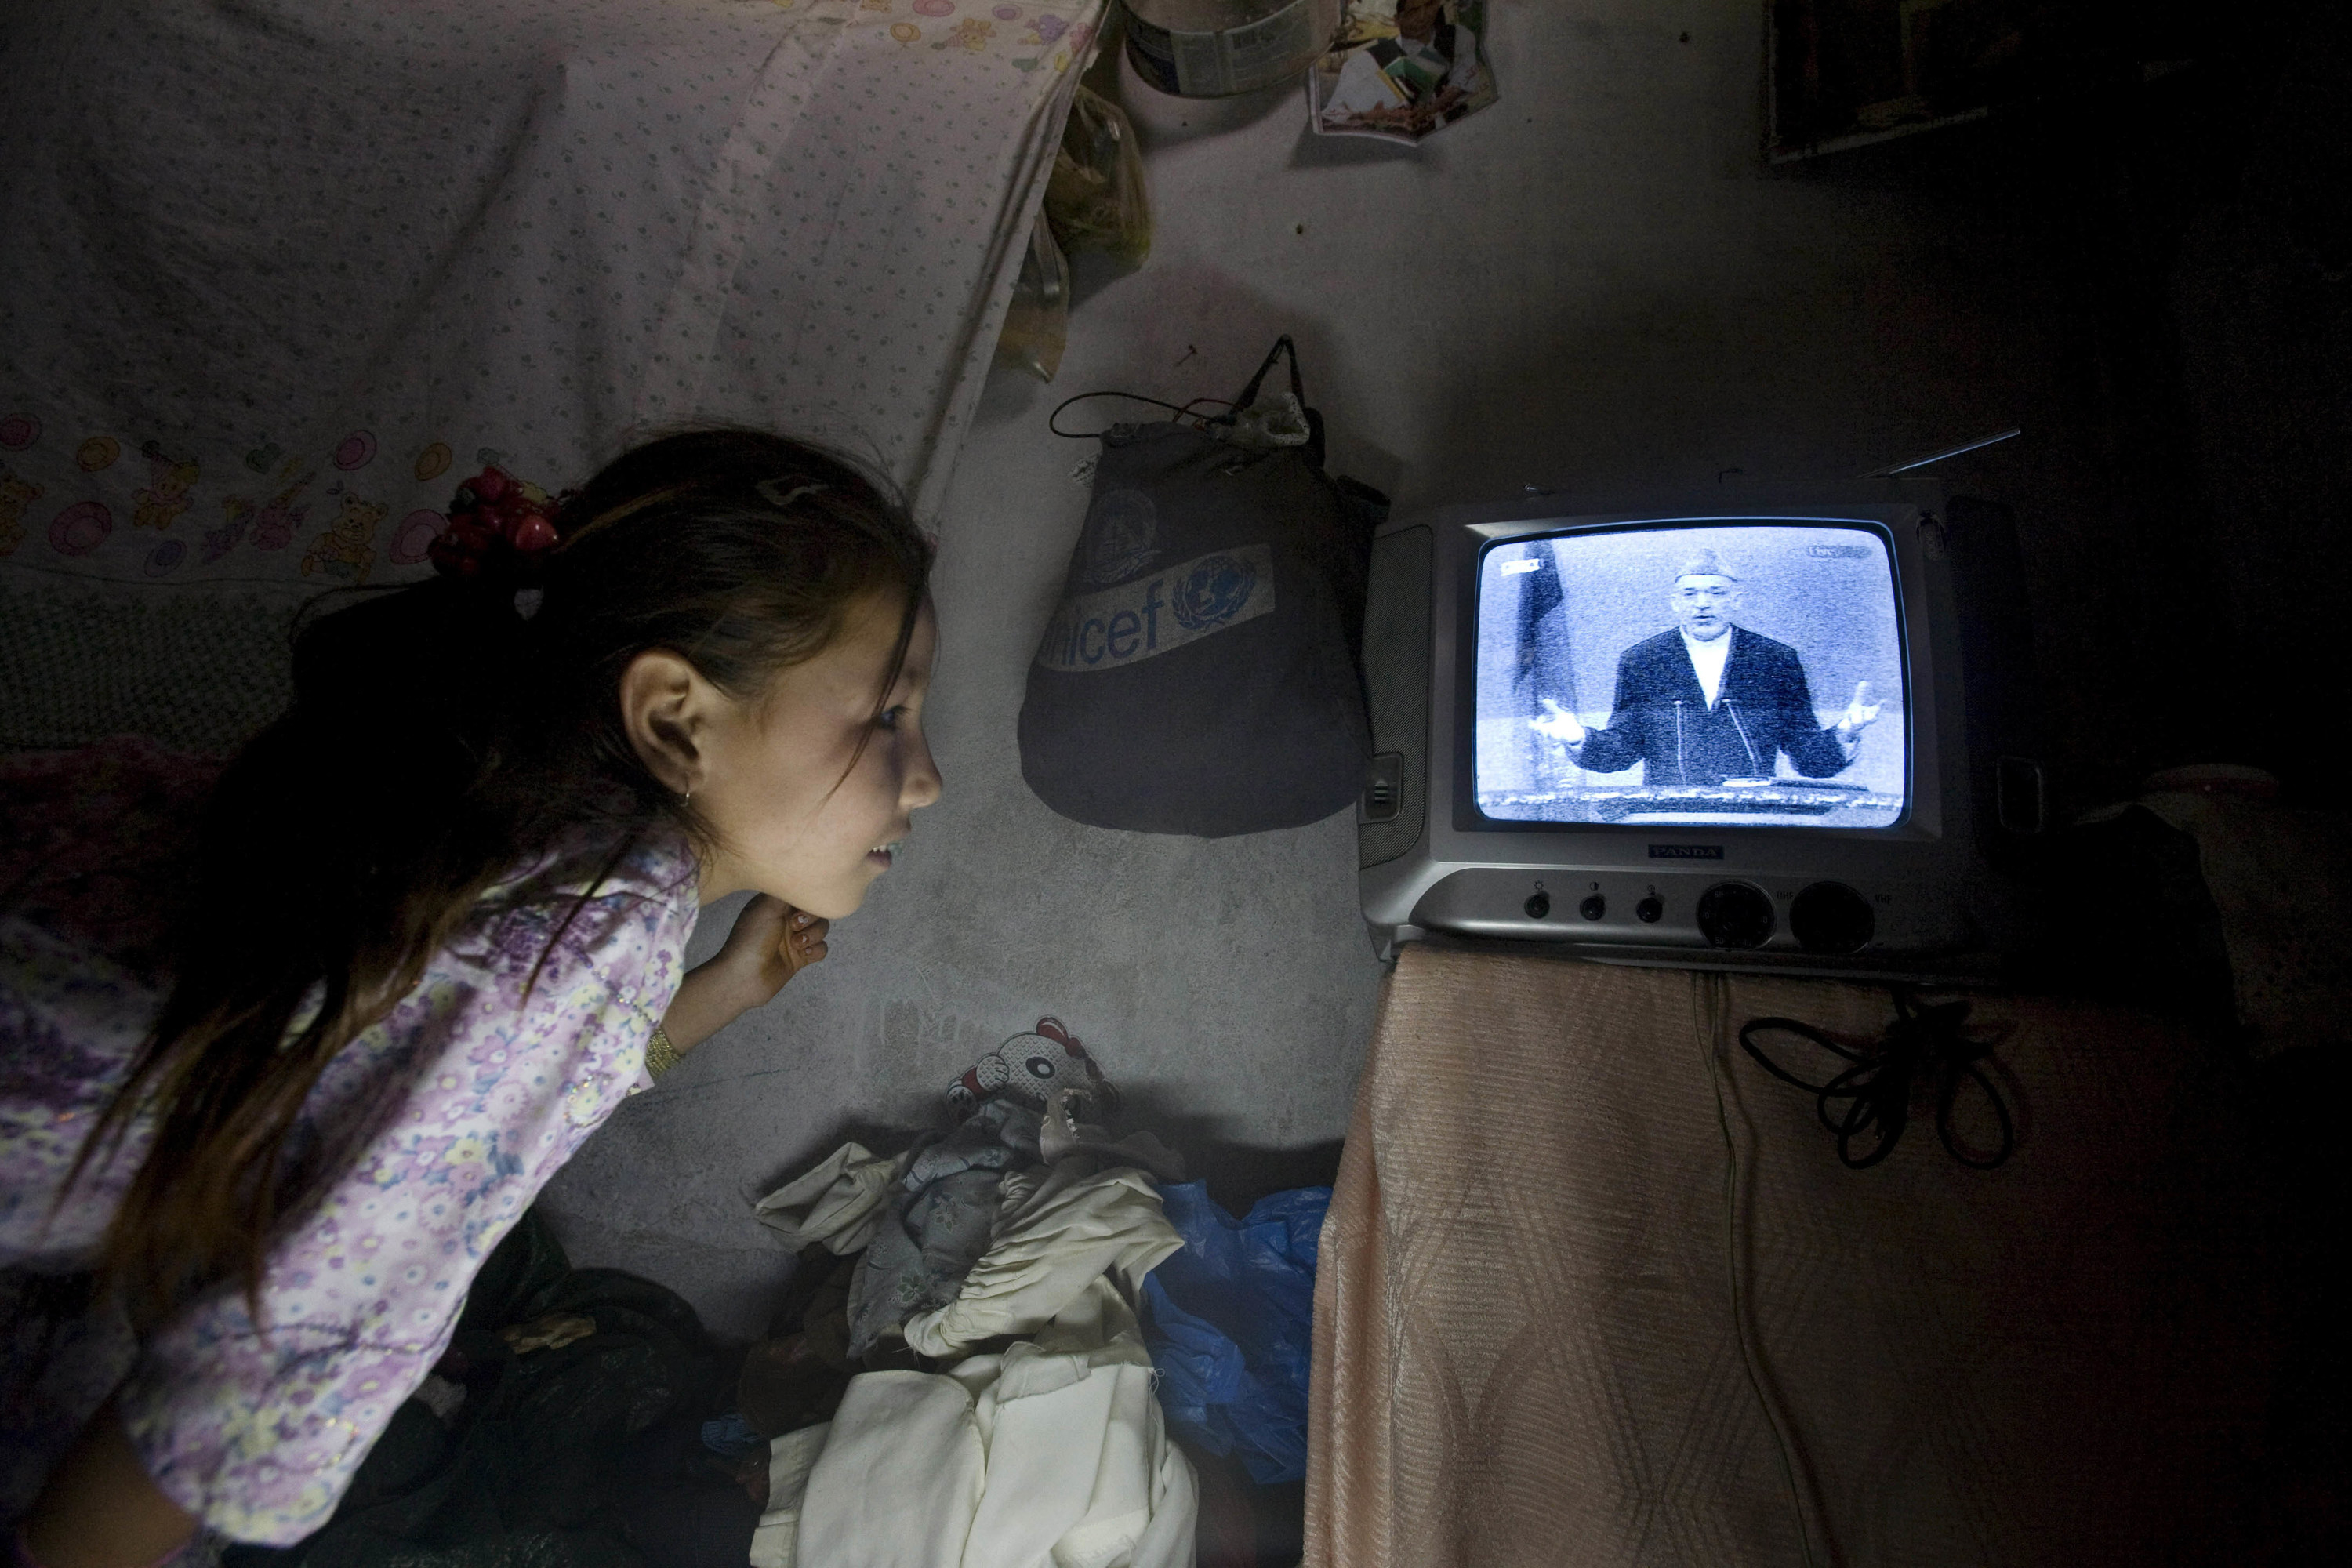 A girl gazes at a small TV and watches then–Afghan president Hamid Karzai speaking at a podium during the presidential candidates' live debate in Kabul, Afghanistan, in 2009